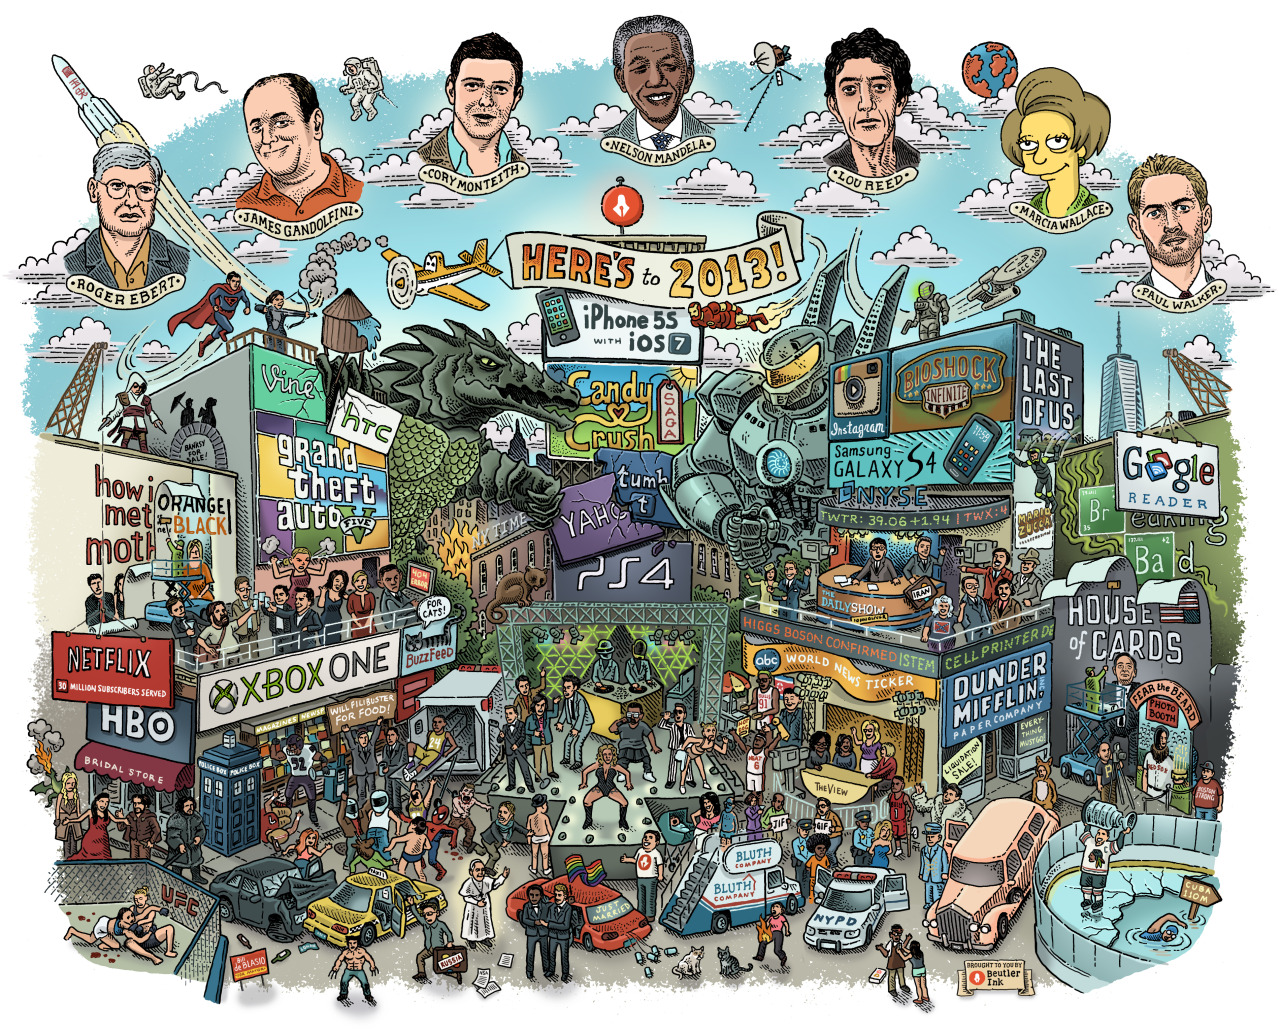 digithoughts: Here's to 2013 | Beutler Ink 2013 highlights according to Beutler Ink and illustration artist Mario Zucca. Pretty tech-heavy. See if you can find Arrested Development.